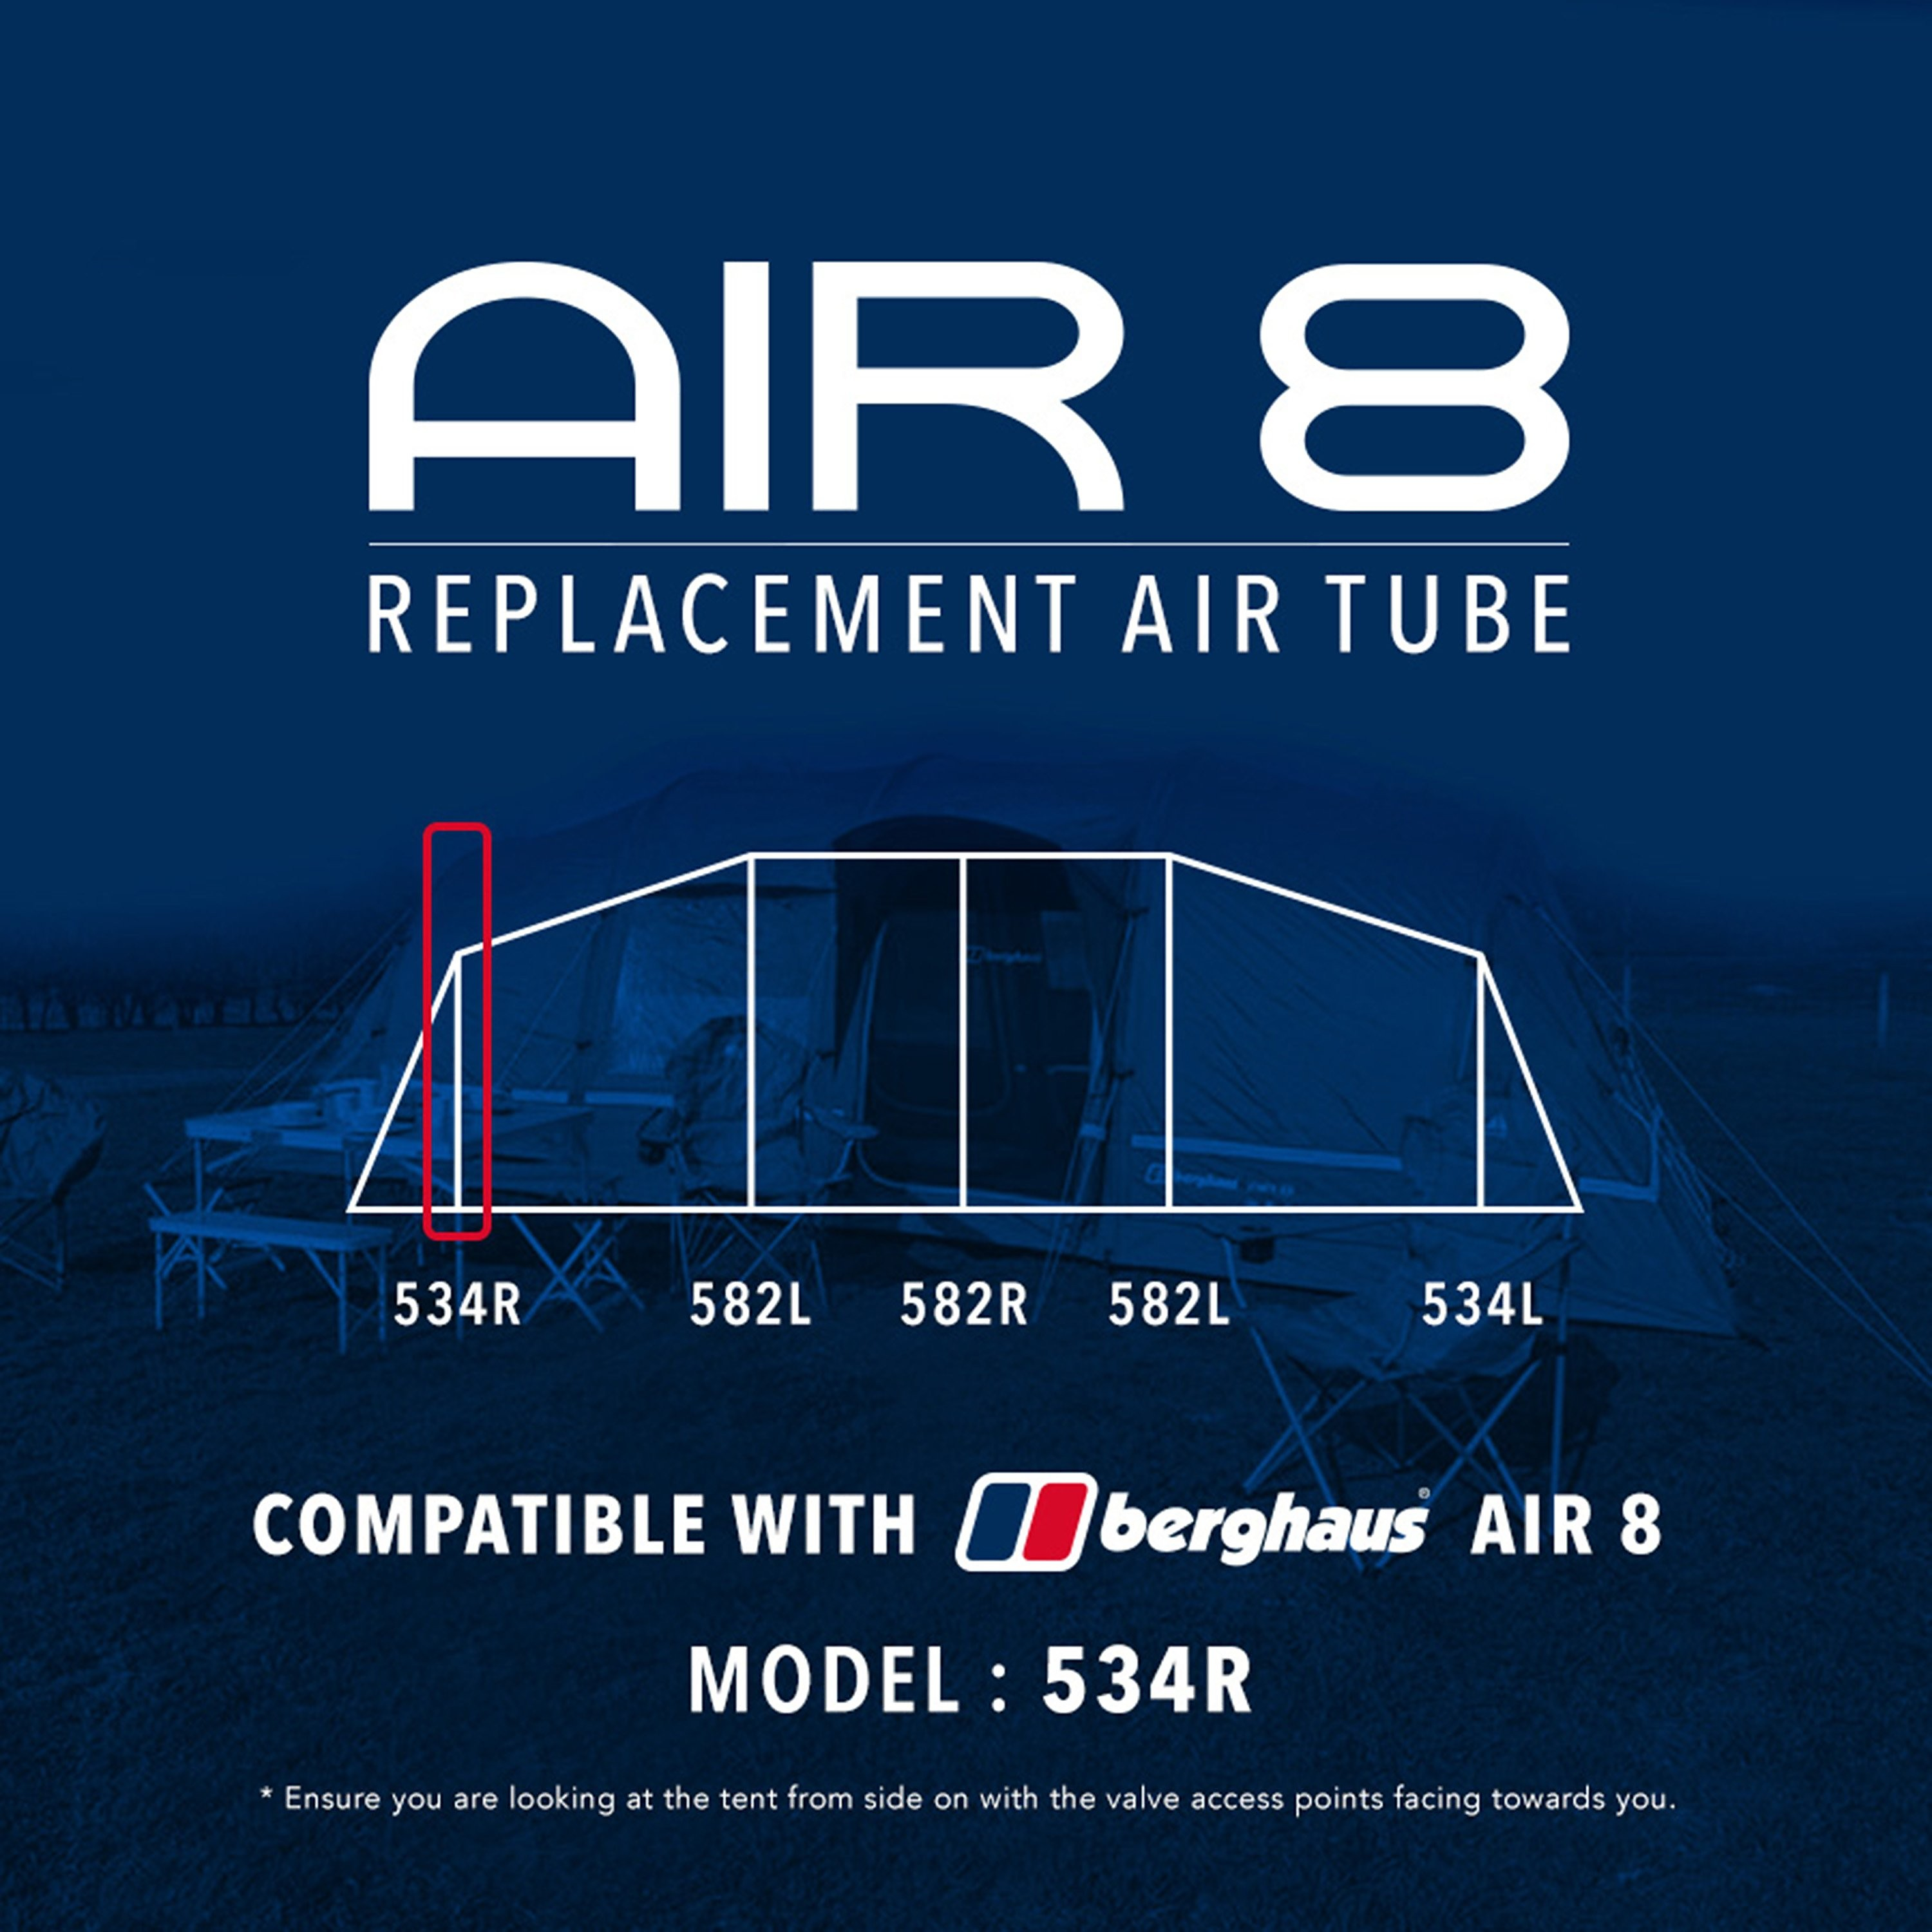 Eurohike Replacement Air Tube